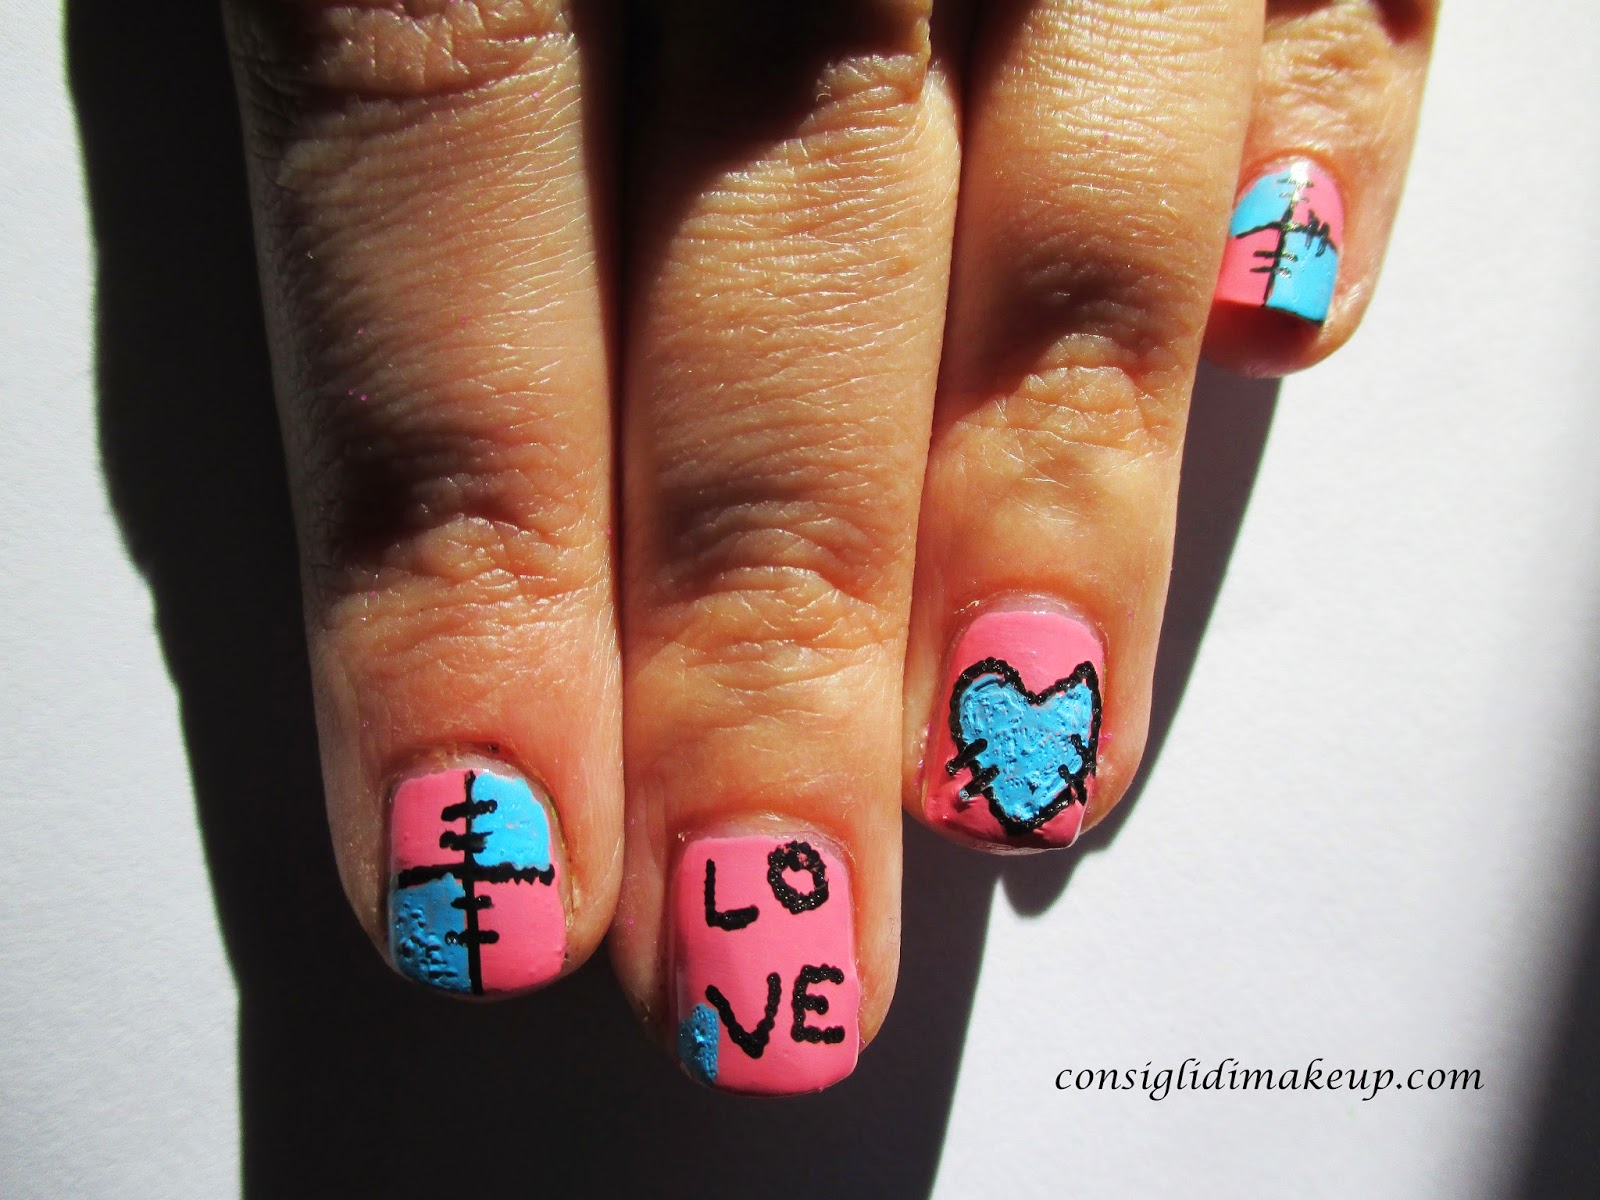 Nail art: Valentine's days